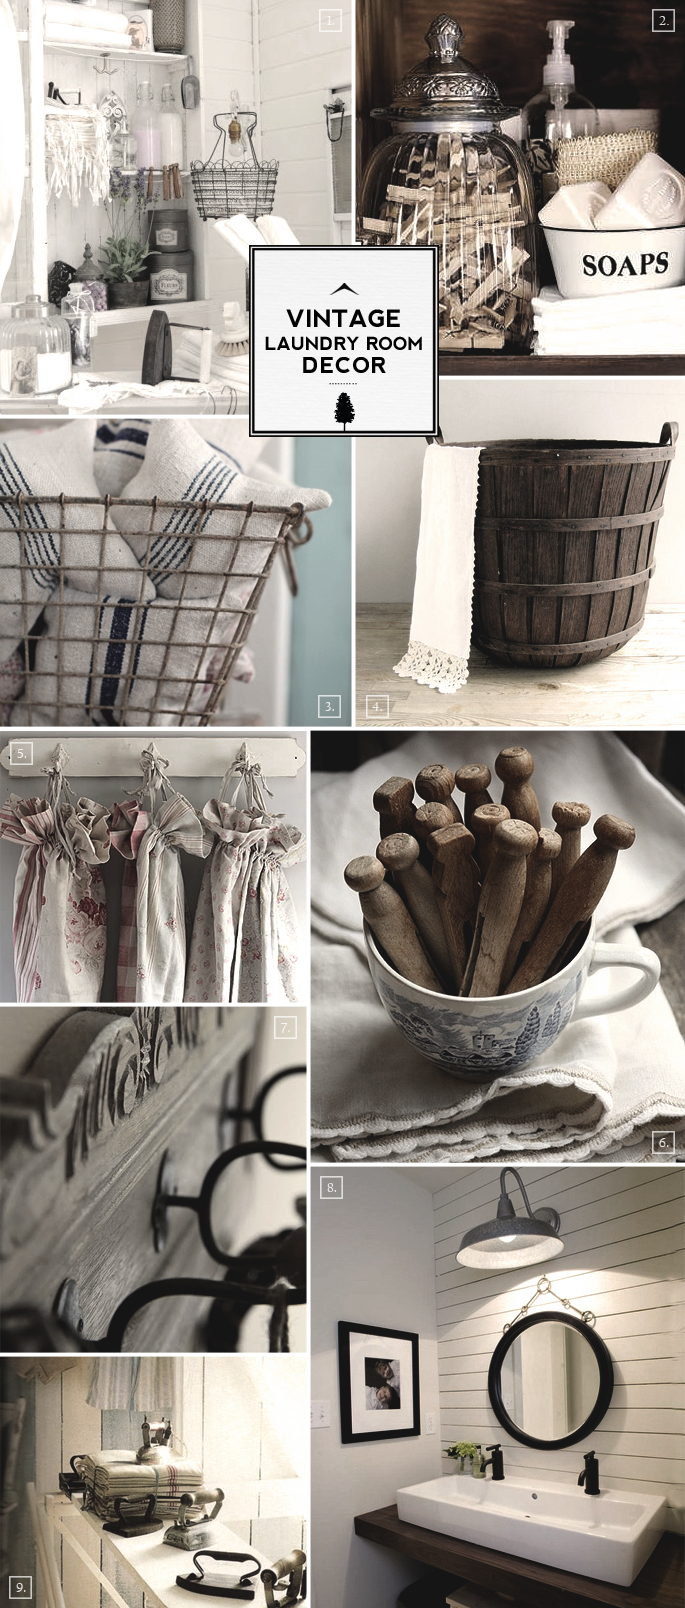 Style guide vintage laundry room decor ideas home tree for Room decor ideas vintage